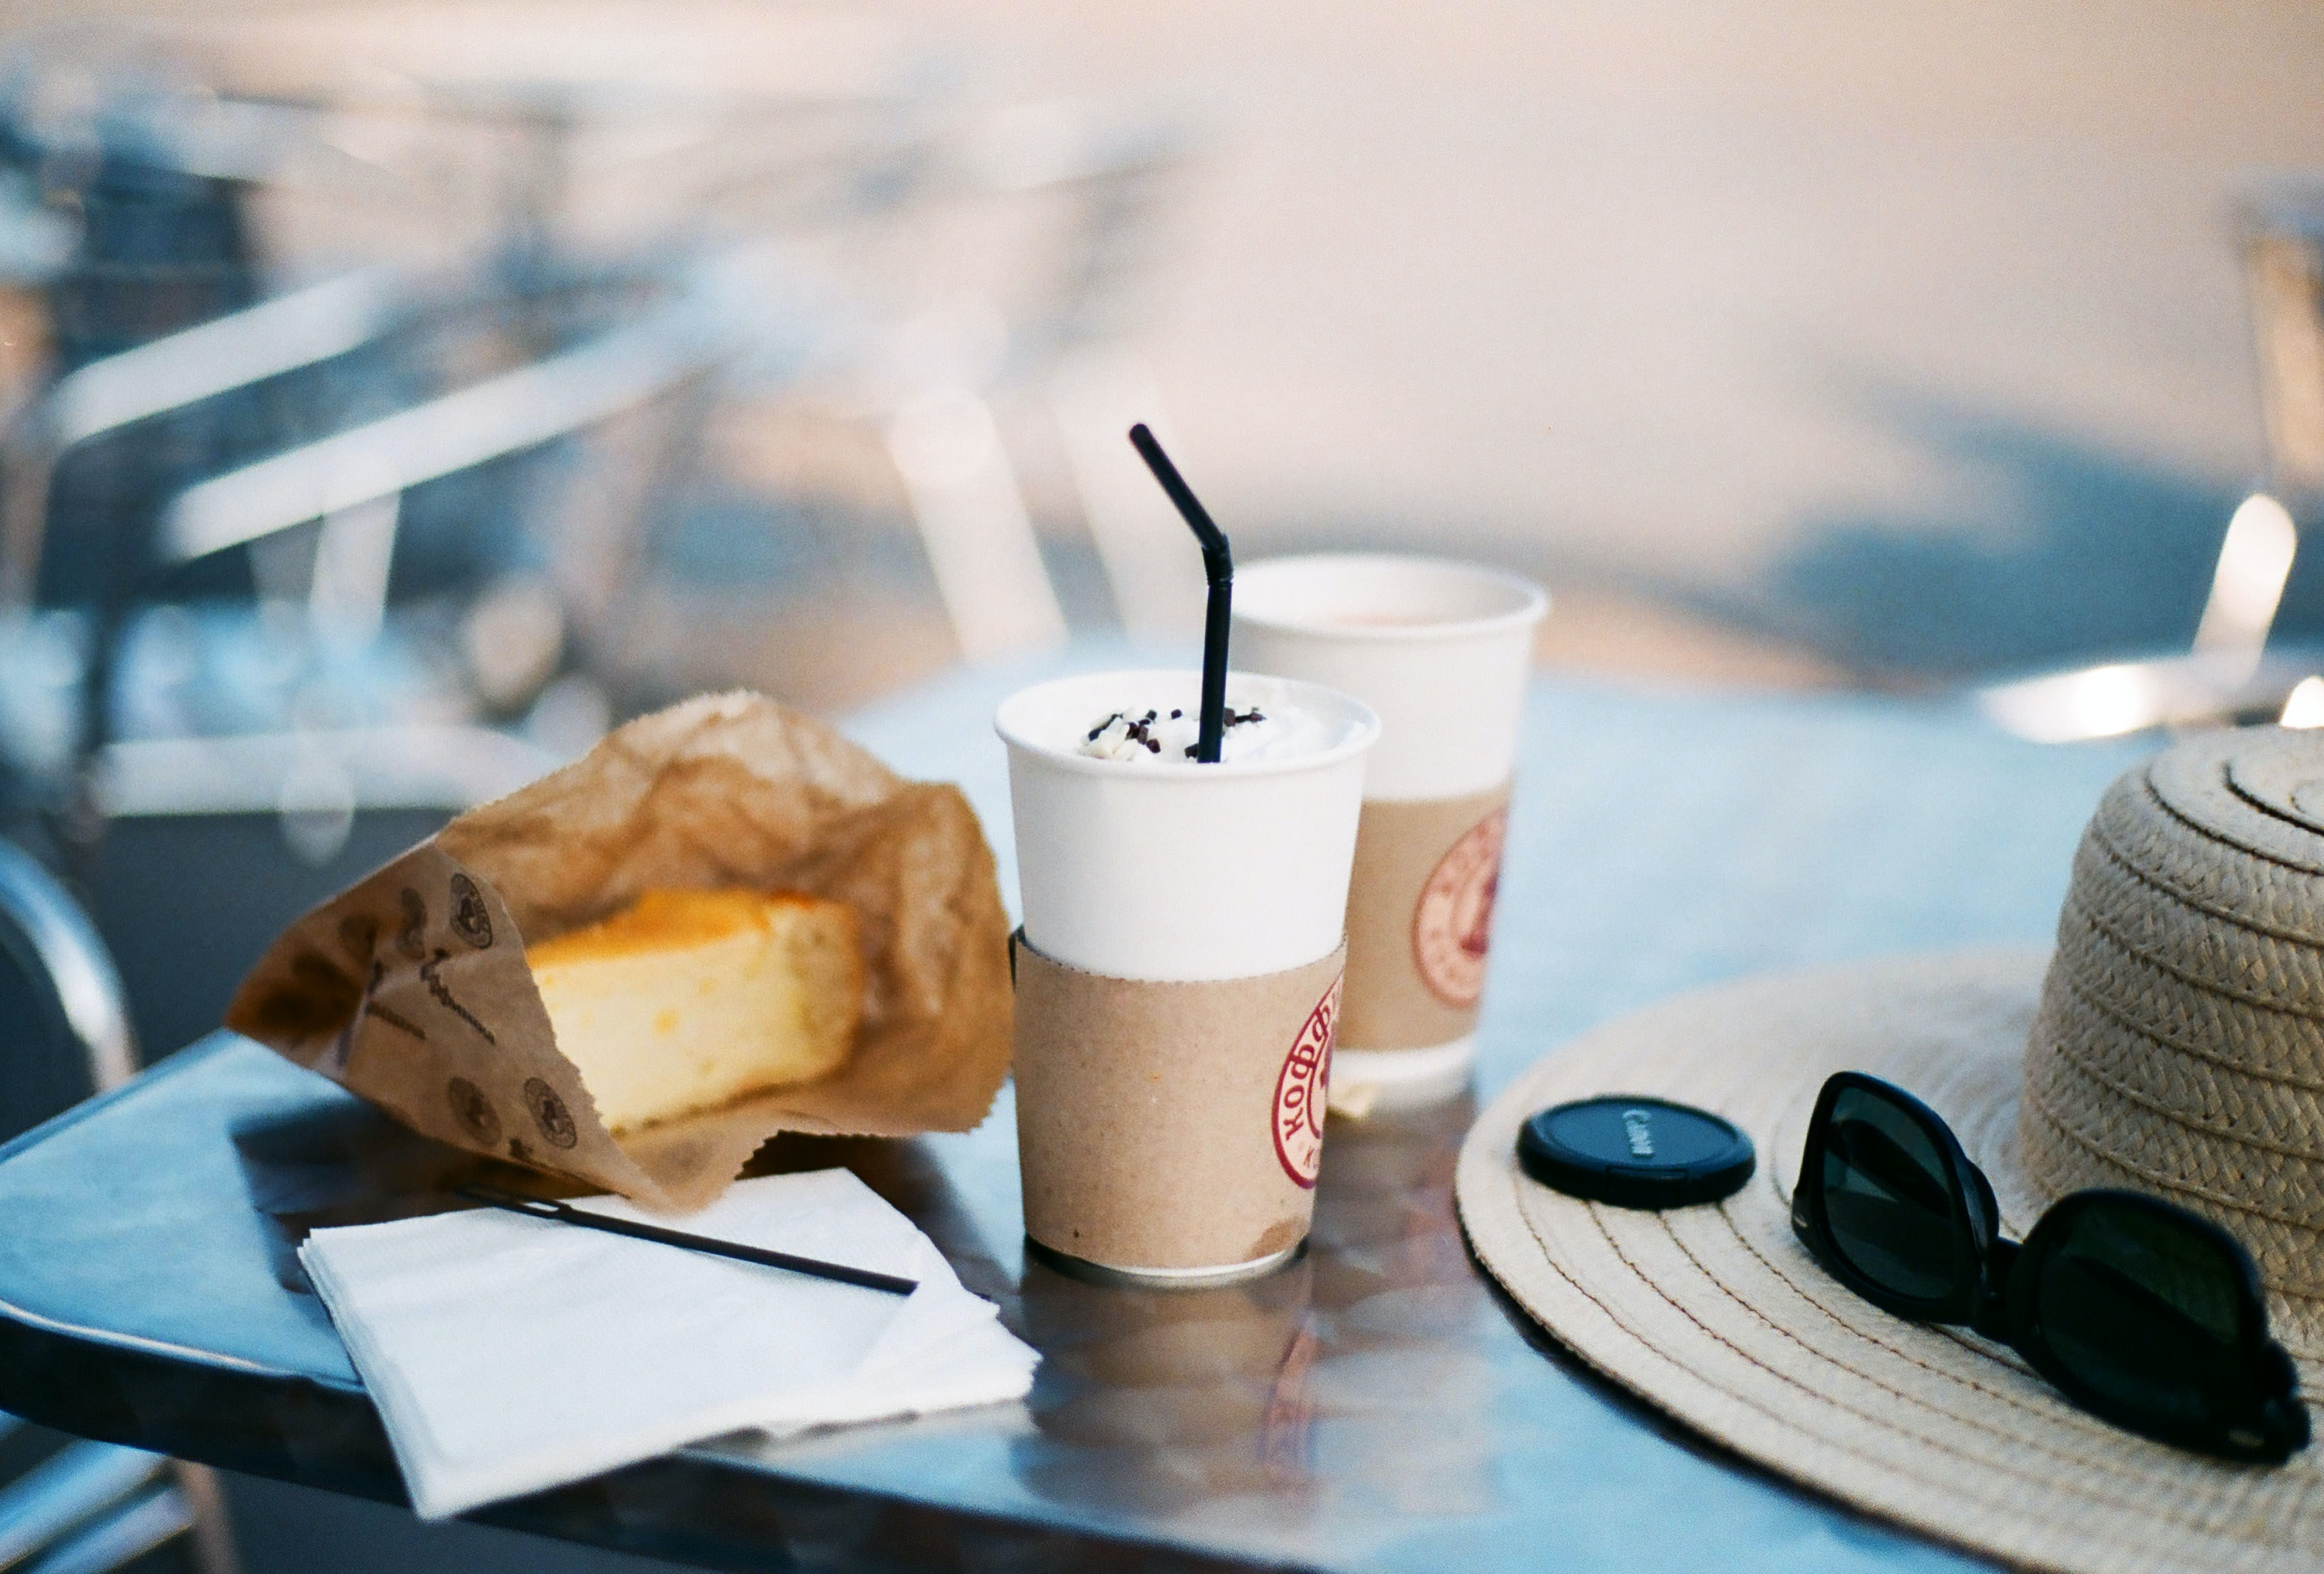 An outdoor table with iced coffee, a piece of cake, a hat and black sunglasses